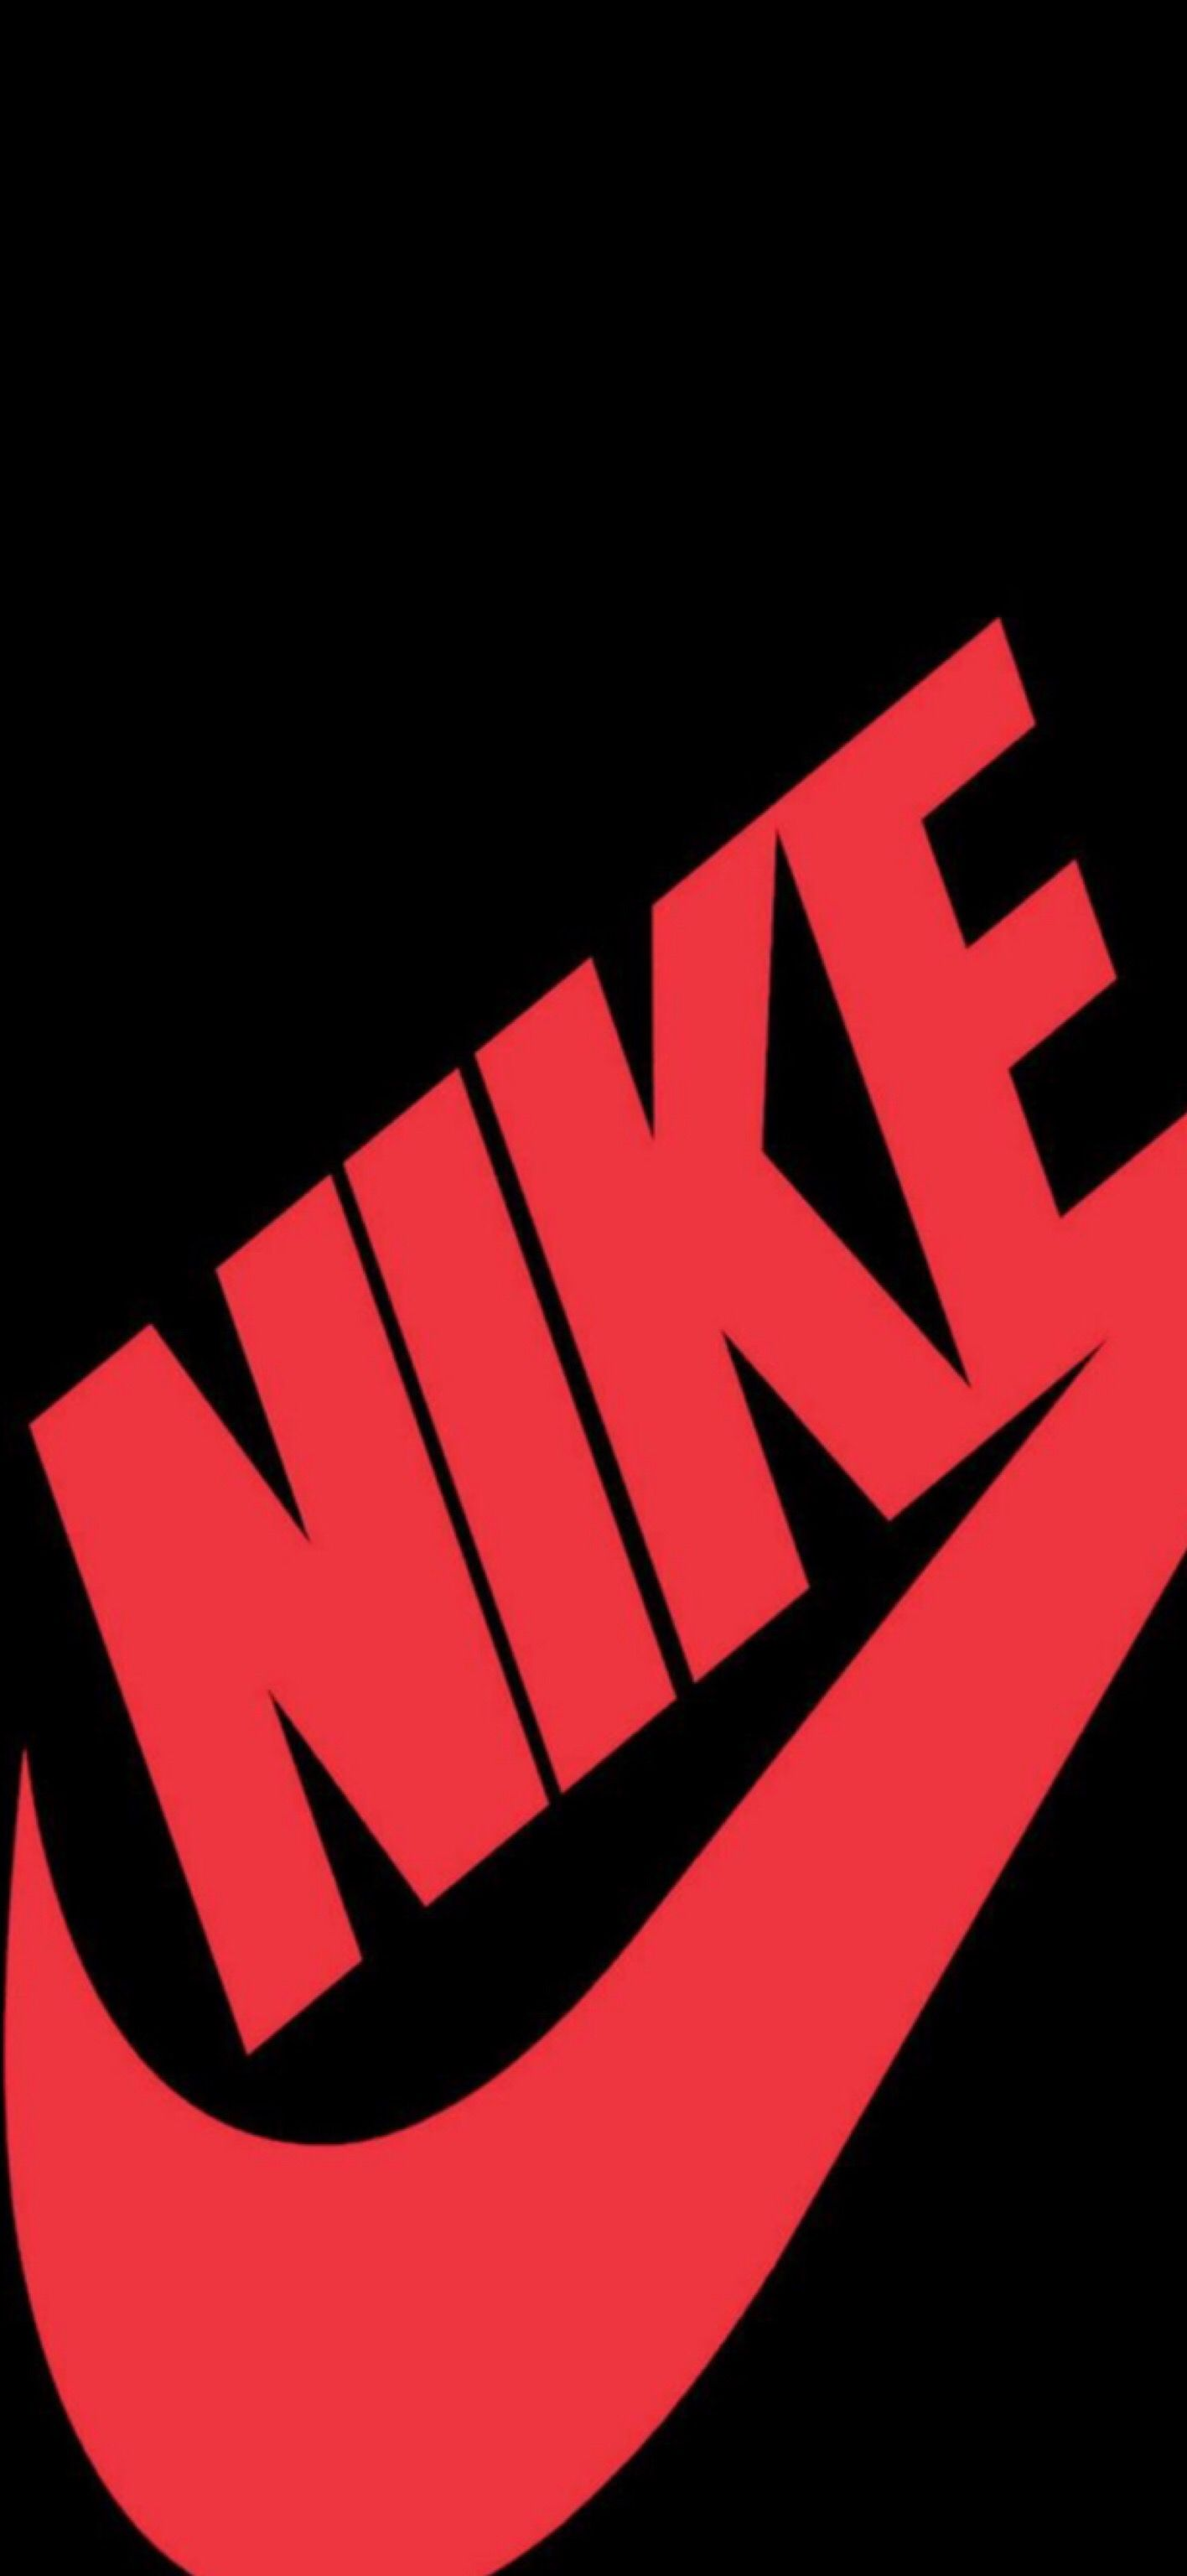 Wallpaper Iphone X Nike Logo Wallpaper Hd Gambar Latar Belakang